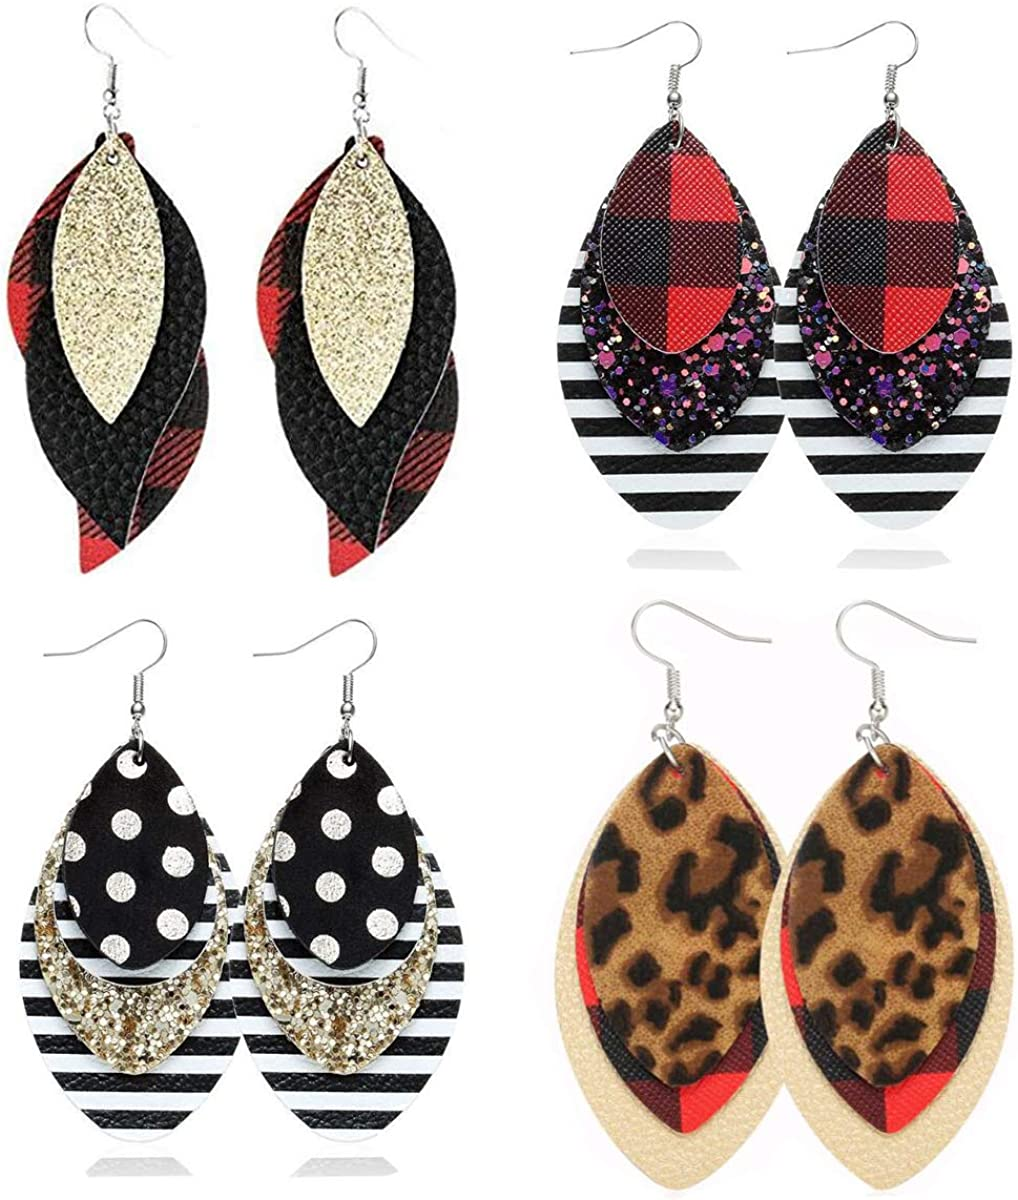 Red and Black and White Striped Layered Faux Leather Earrings